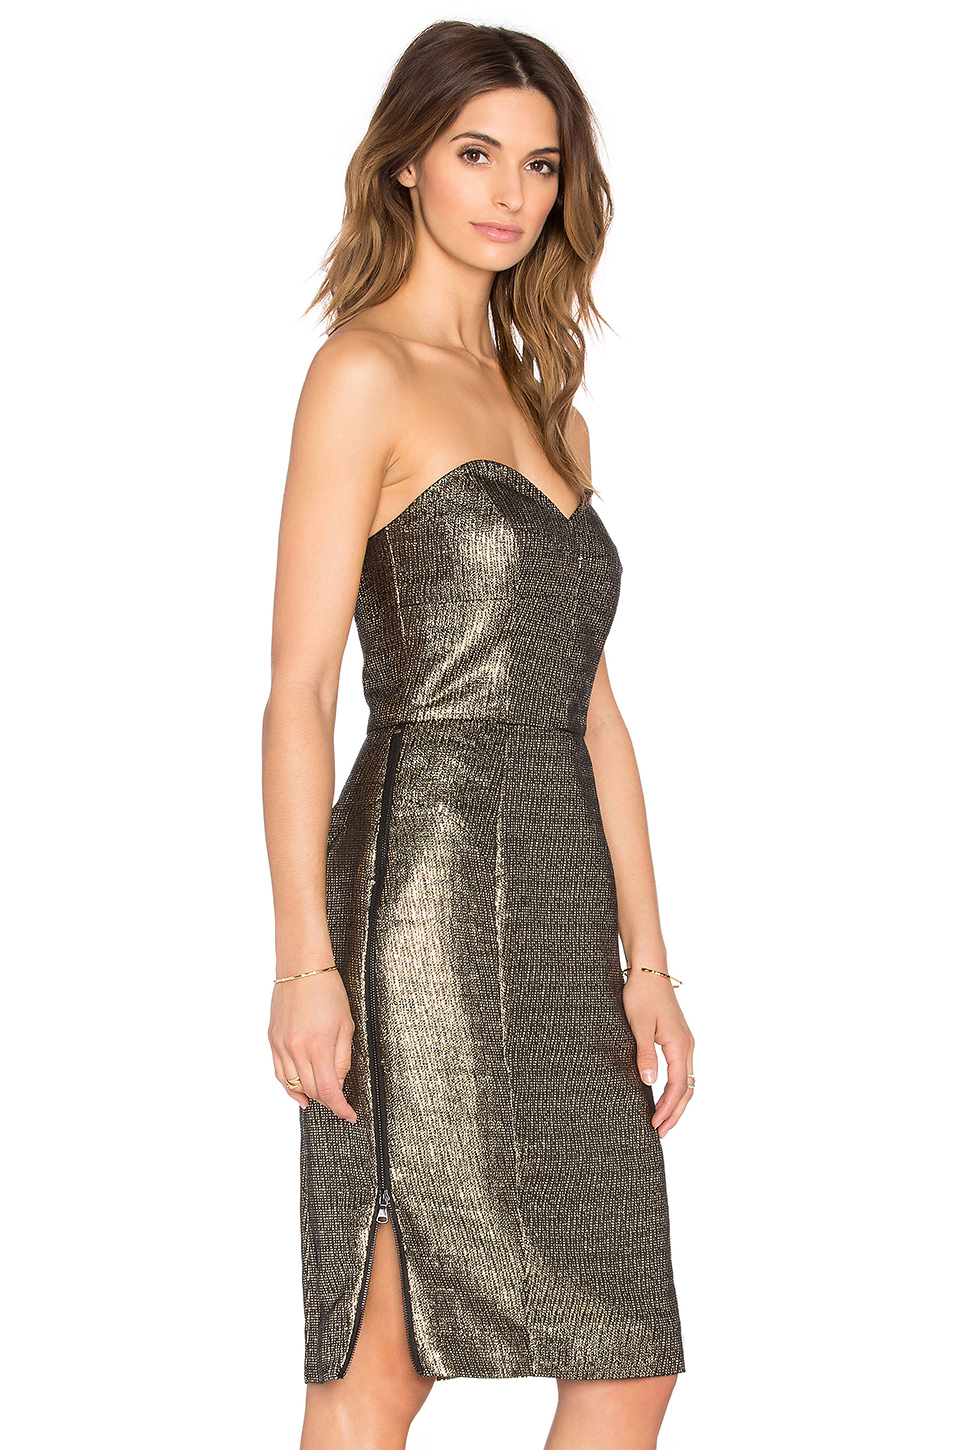 2f5a7f4af7d0 MILLY Marta Couture Metallic Strapless Dress in Metallic - Lyst